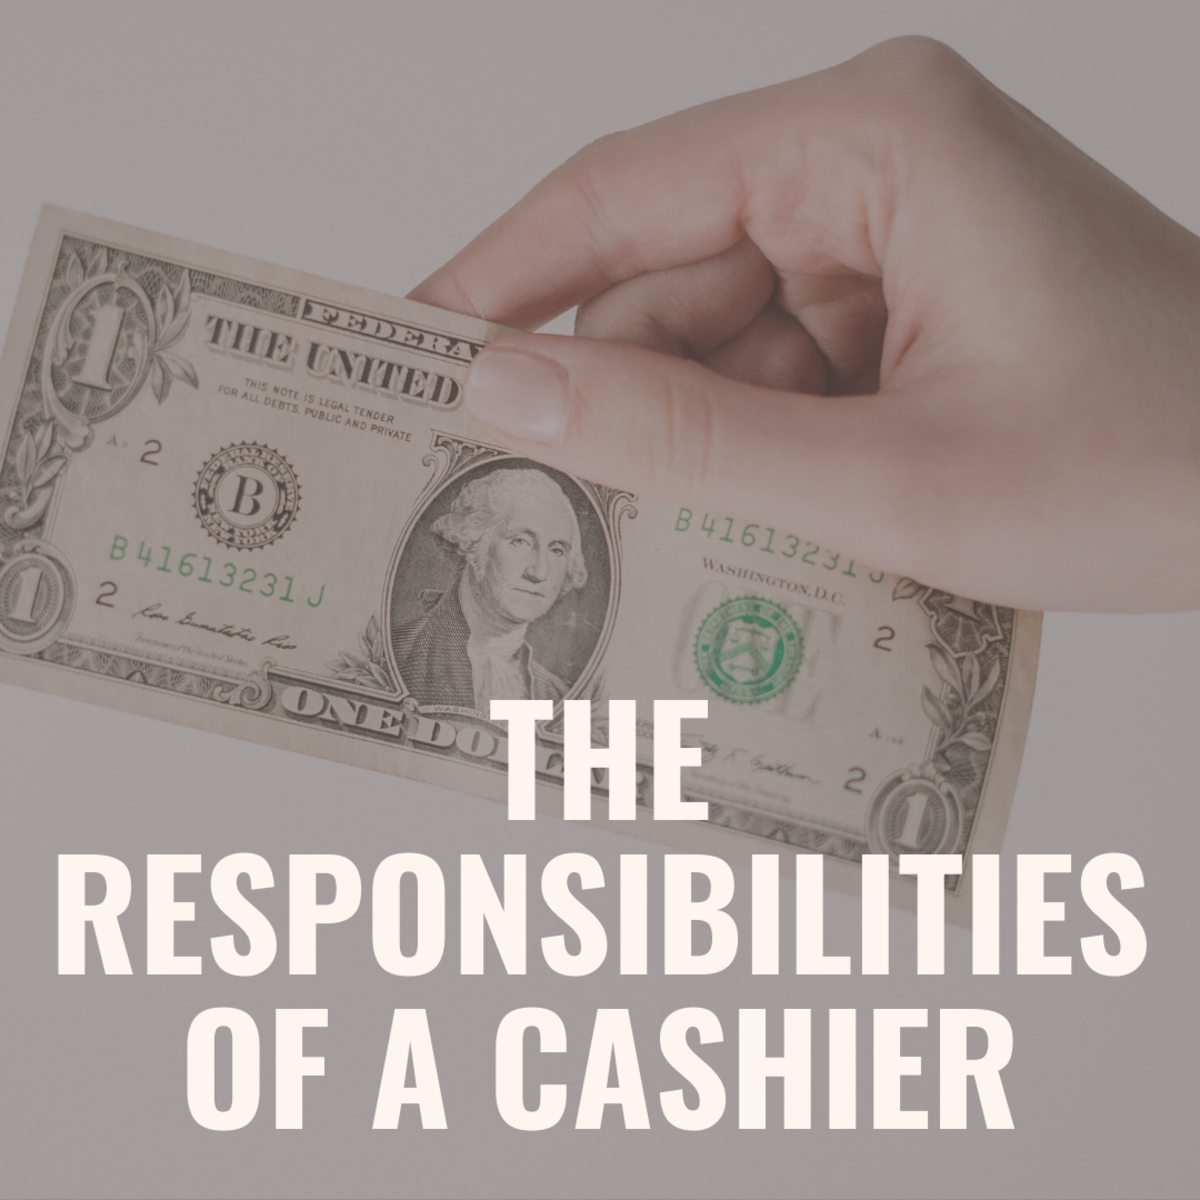 Learn what a cashier does on a daily basis.